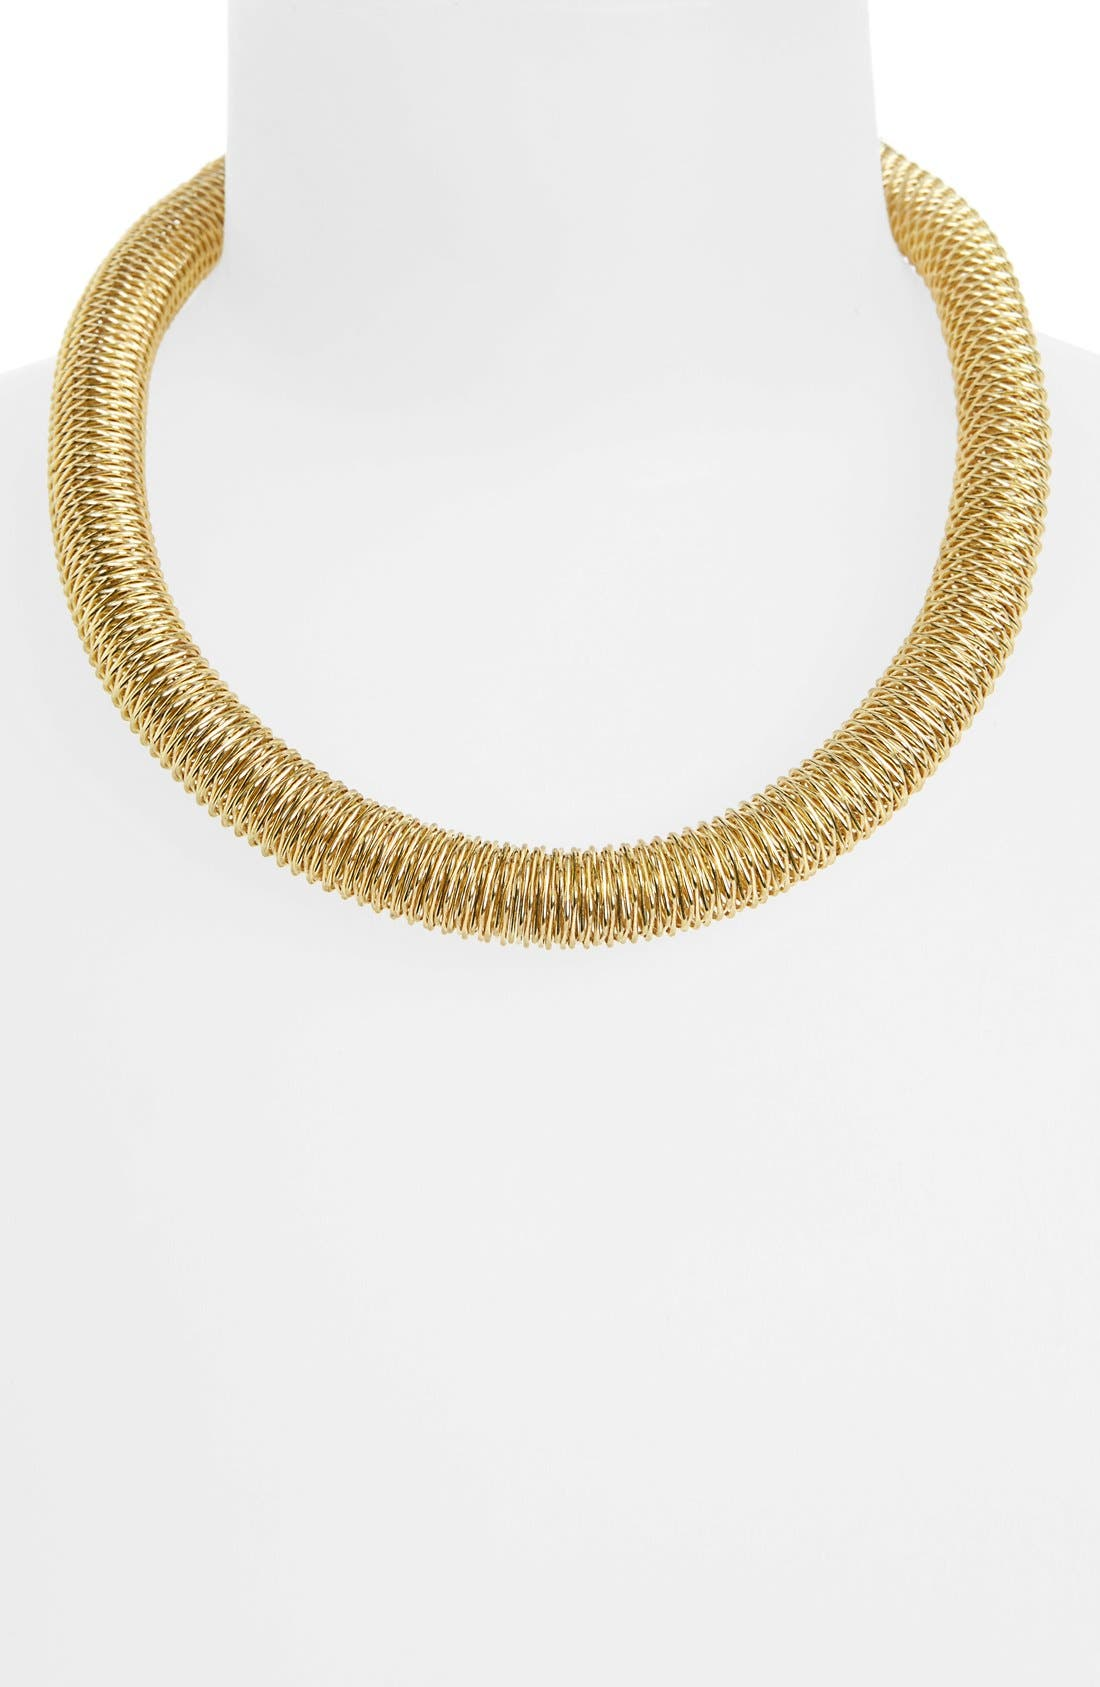 Alternate Image 1 Selected - Topshop 'Spring Stretch' Collar Necklace